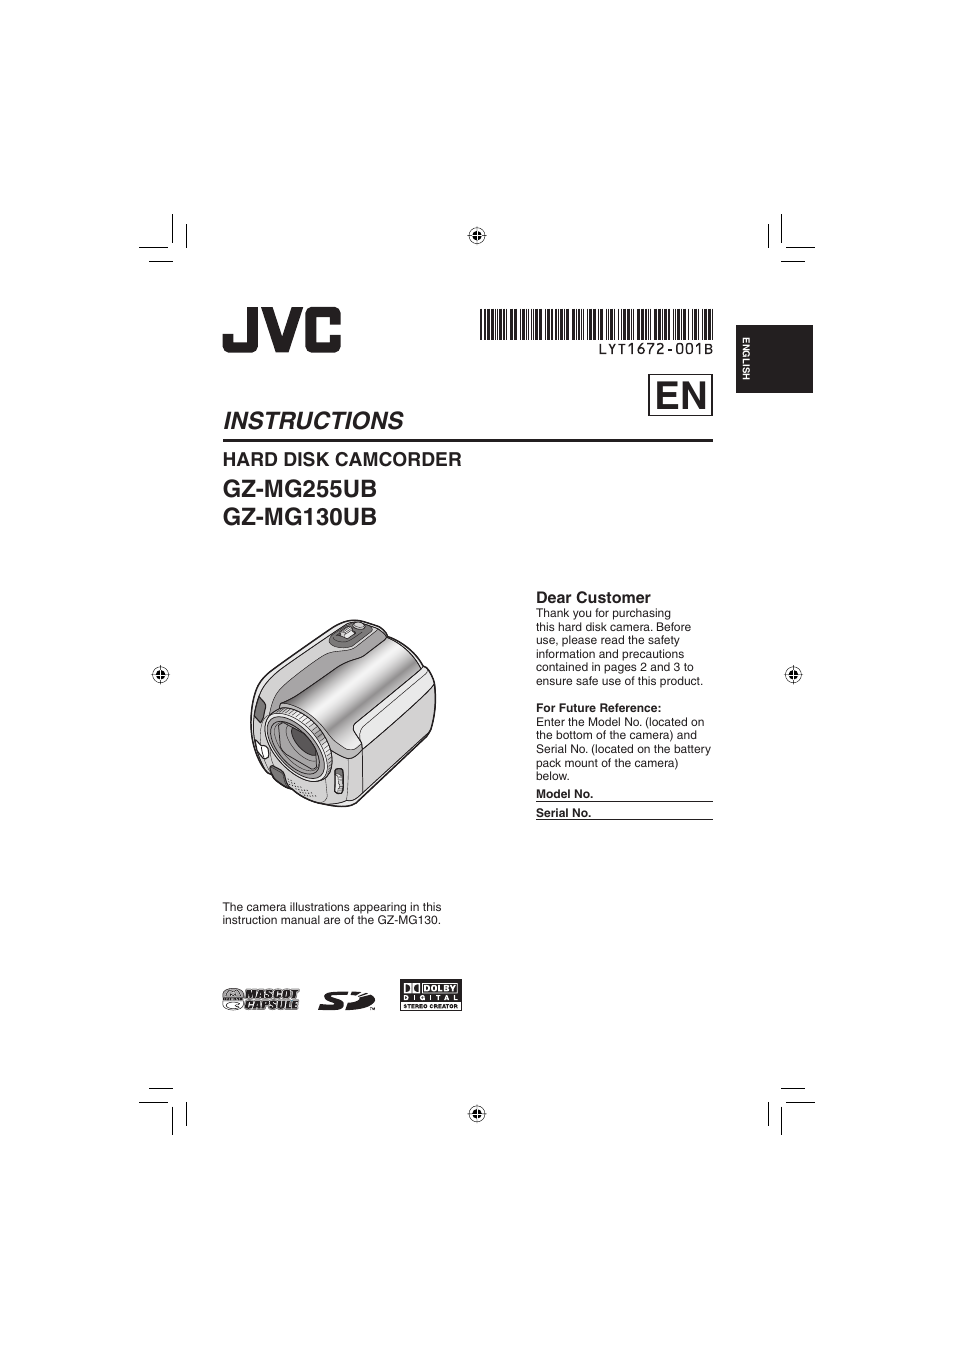 jvc everio gz mg255u user manual 60 pages also for everio gz mg130u rh manualsdir com JVC Everio Manual PDF jvc everio service manual